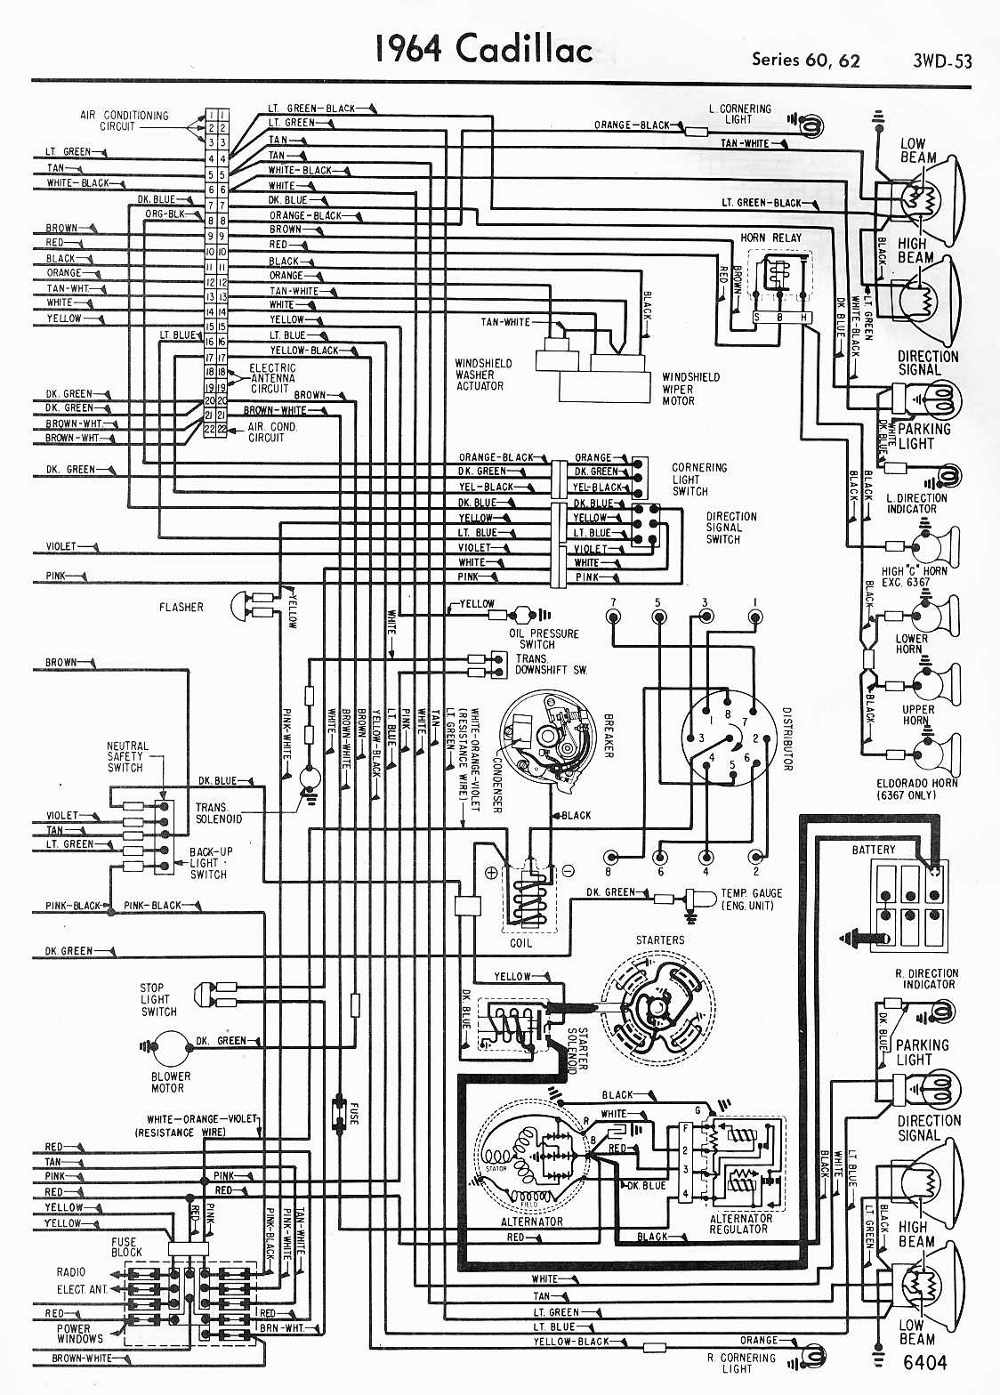 hight resolution of 64 cadillac wiring diagram example electrical wiring diagram u2022 rh olkha co 1999 cadillac deville radio